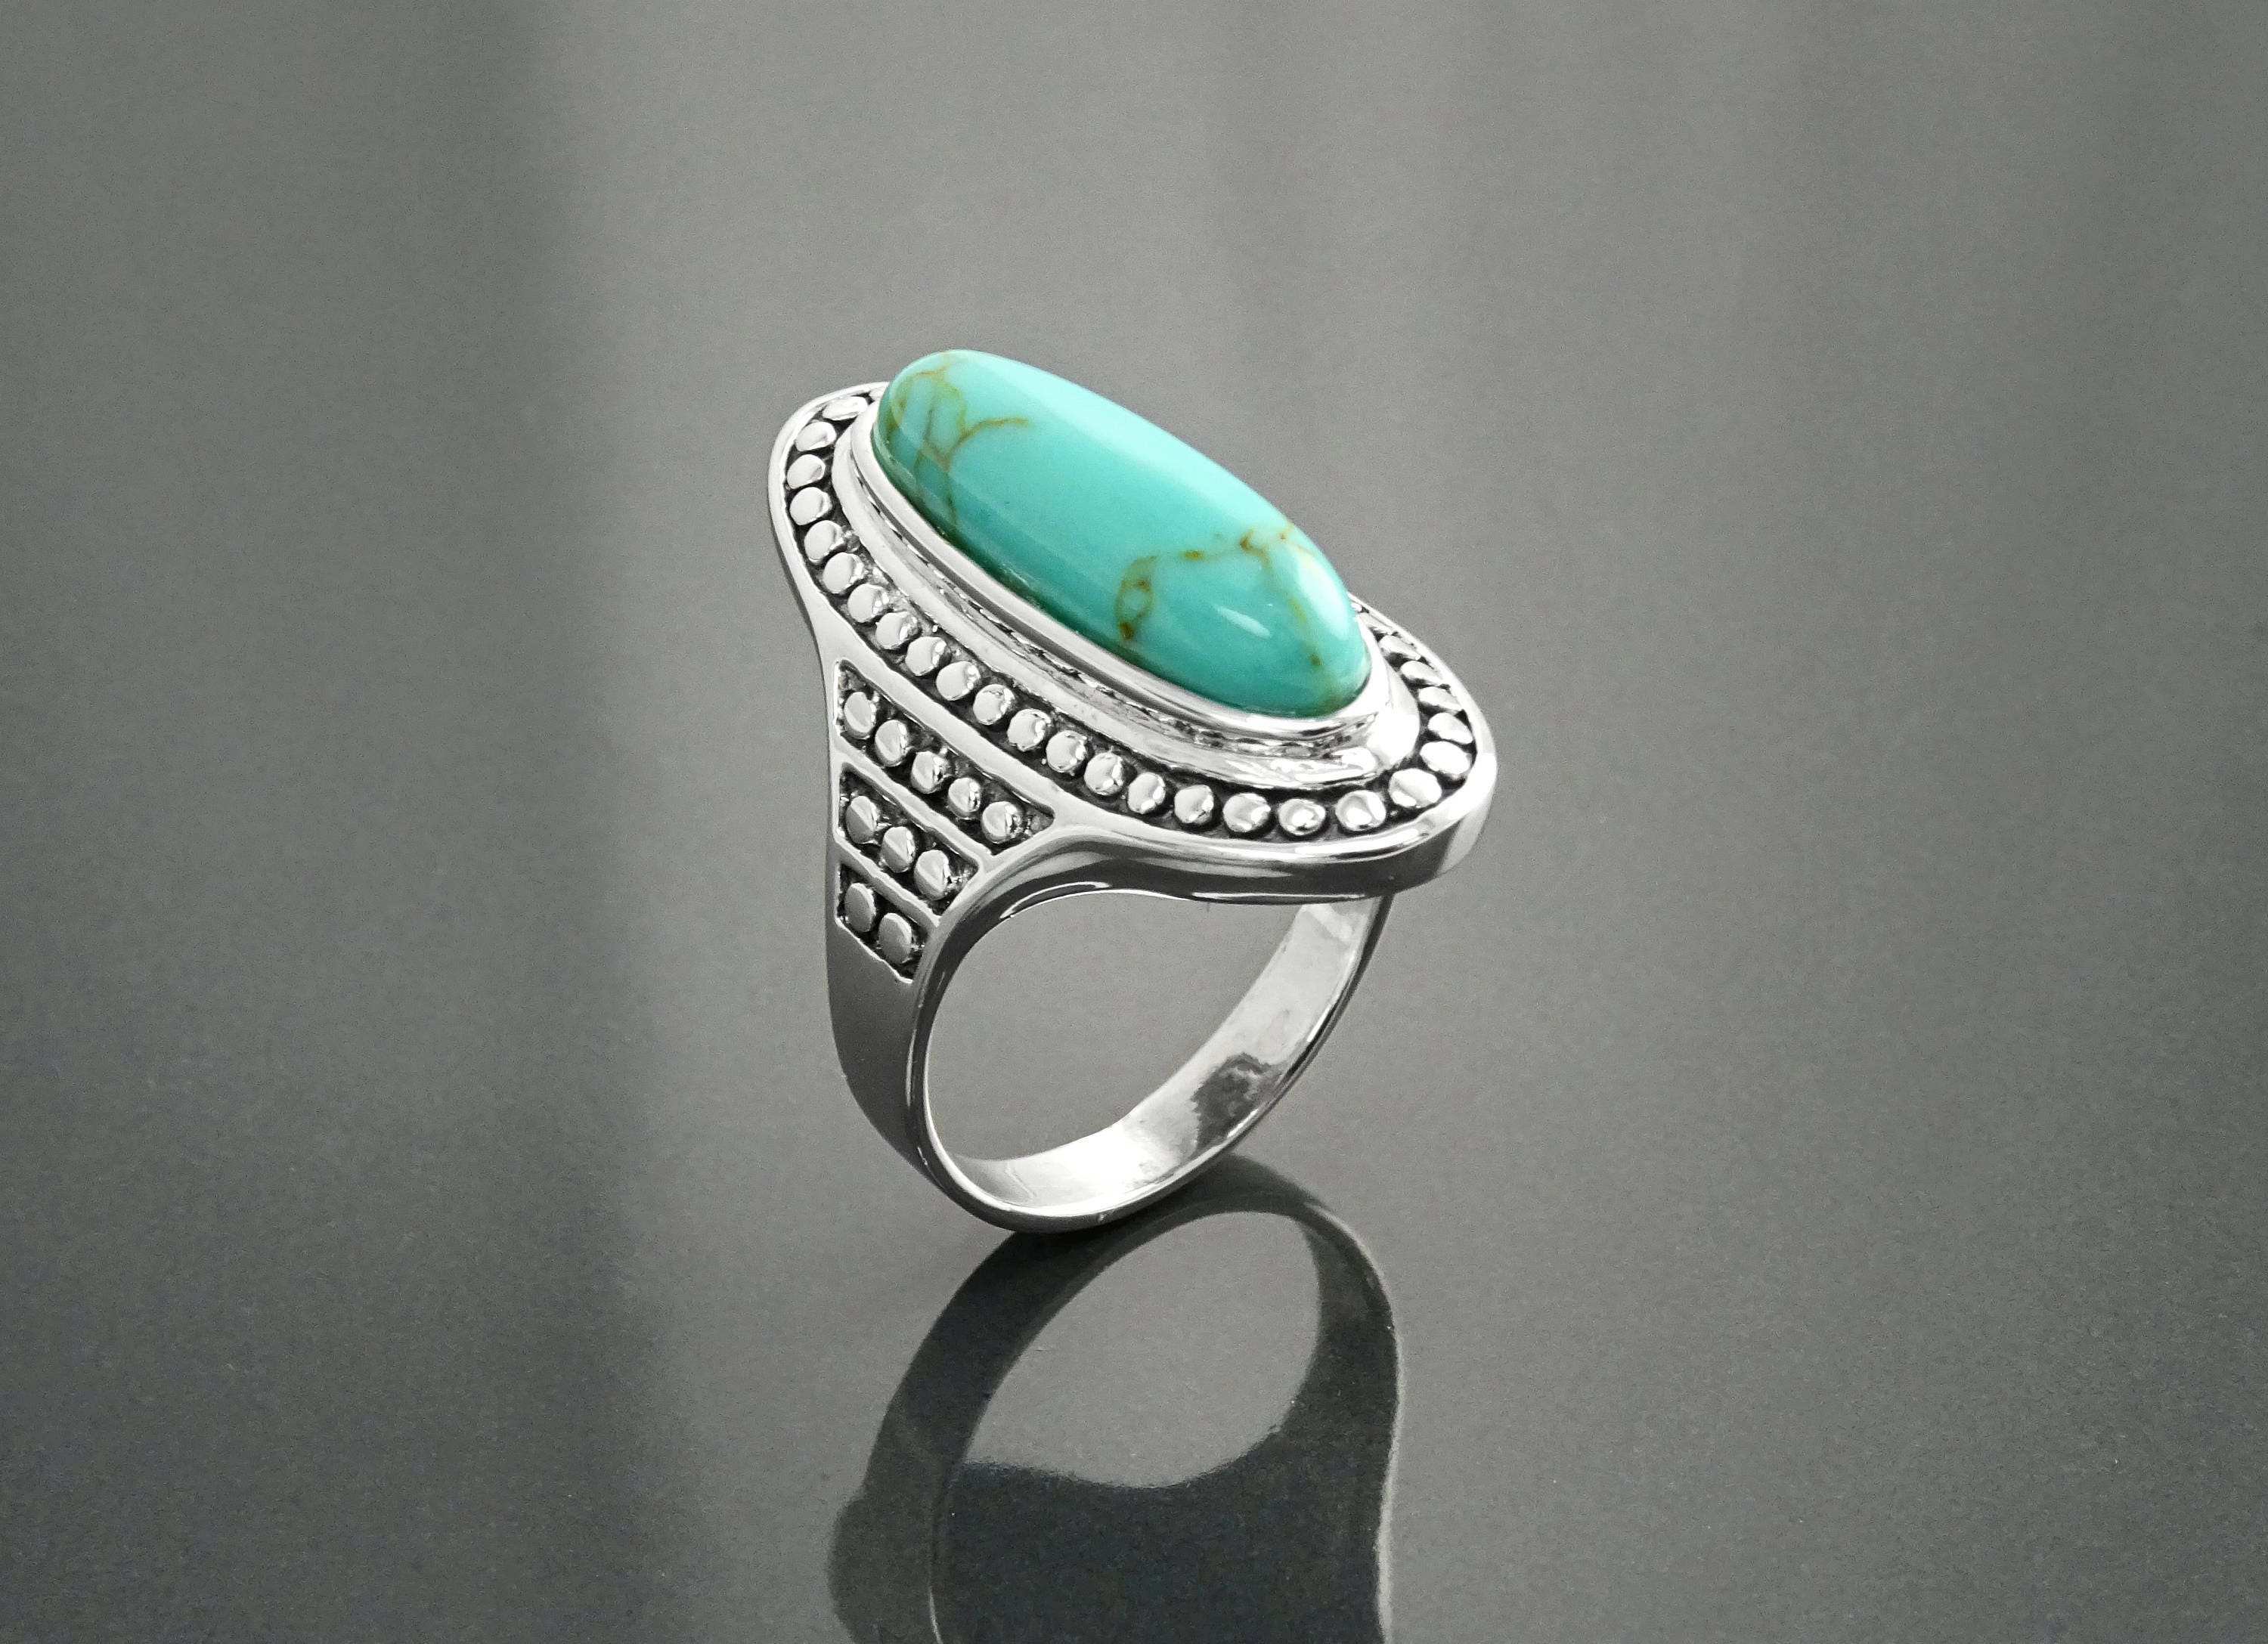 turquoise stone discovered rings ring sterling handmade goods silve natural